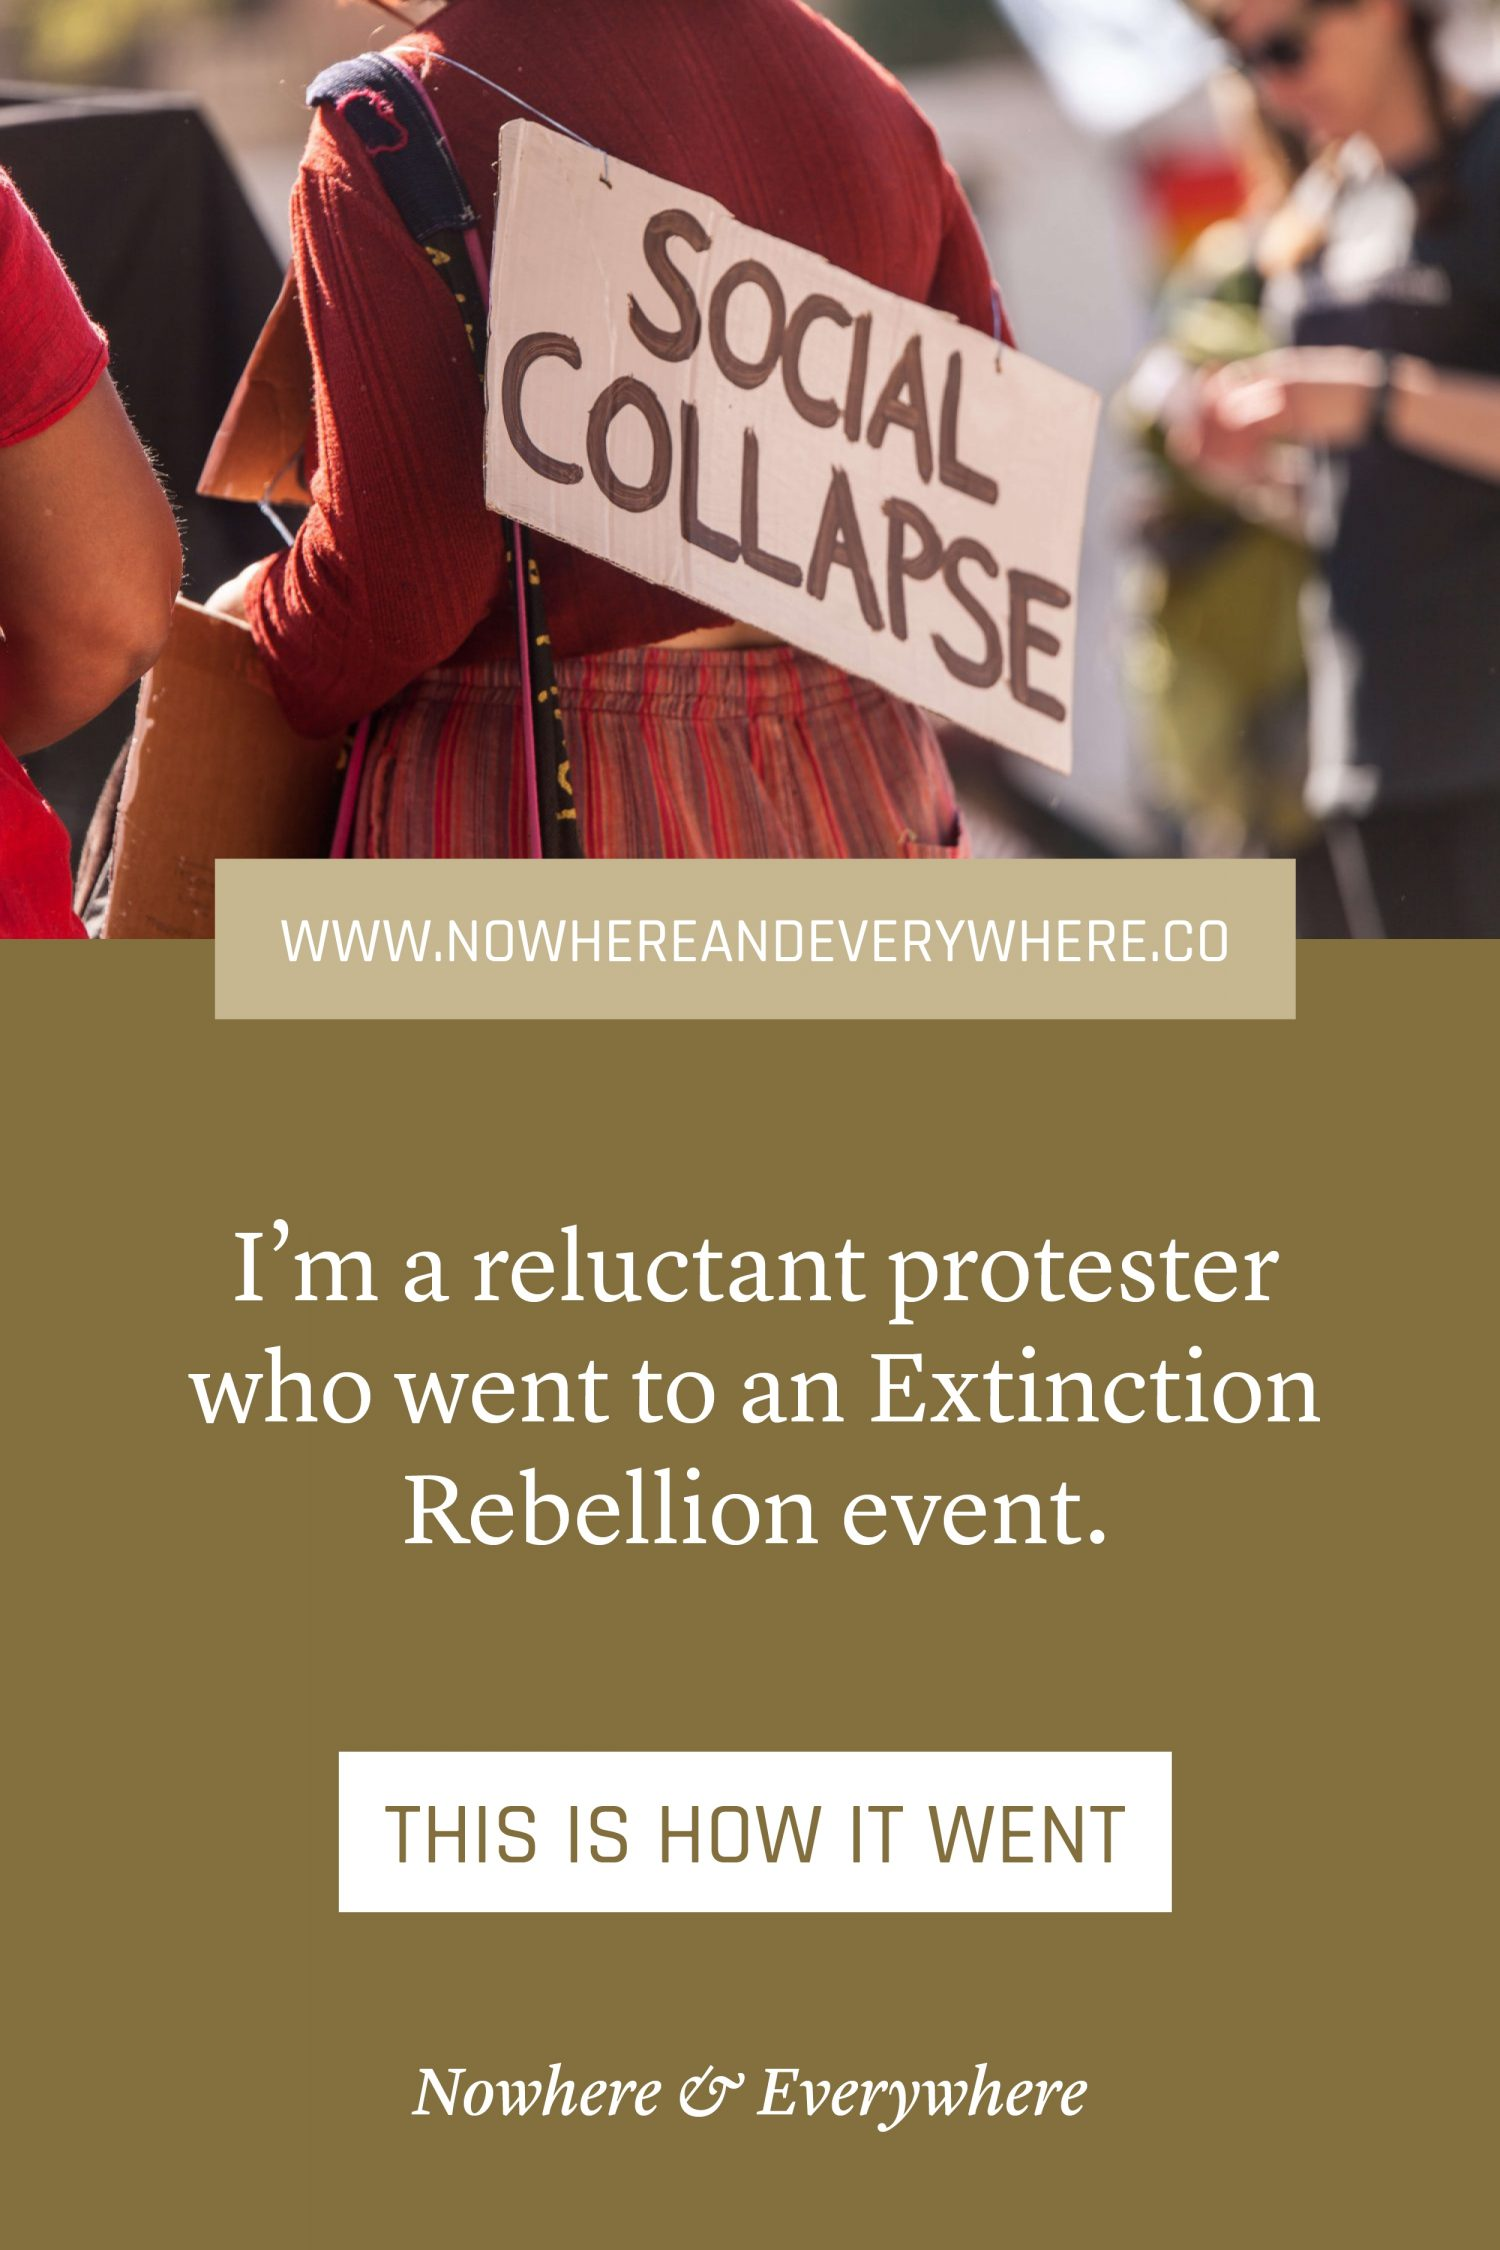 Attending a protest as a reluctant protester Nowhere & Everywhere Sustainable Travel